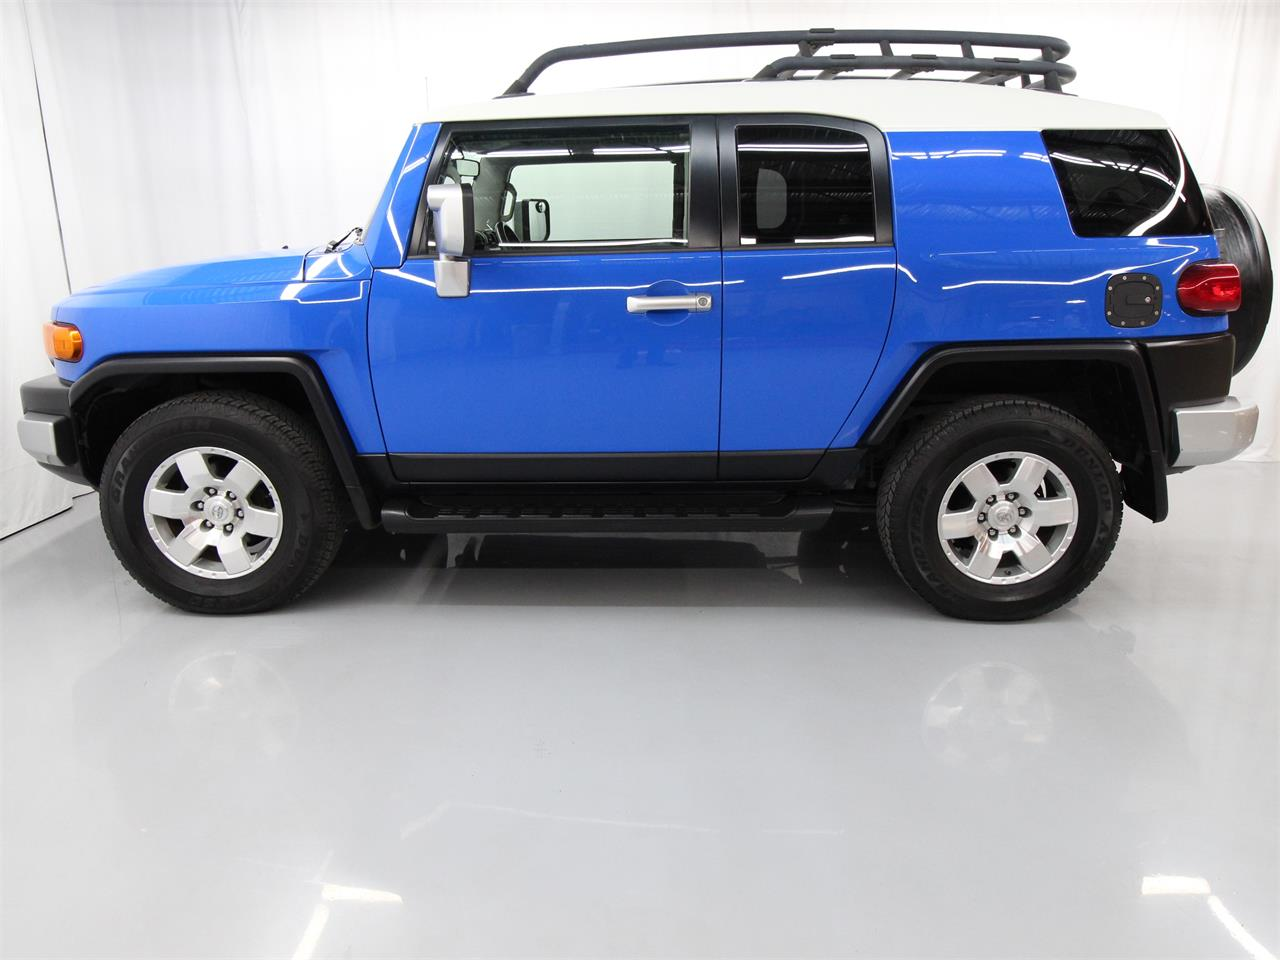 Large Picture of 2008 Toyota FJ Cruiser located in Christiansburg Virginia Offered by Duncan Imports & Classic Cars - PY12